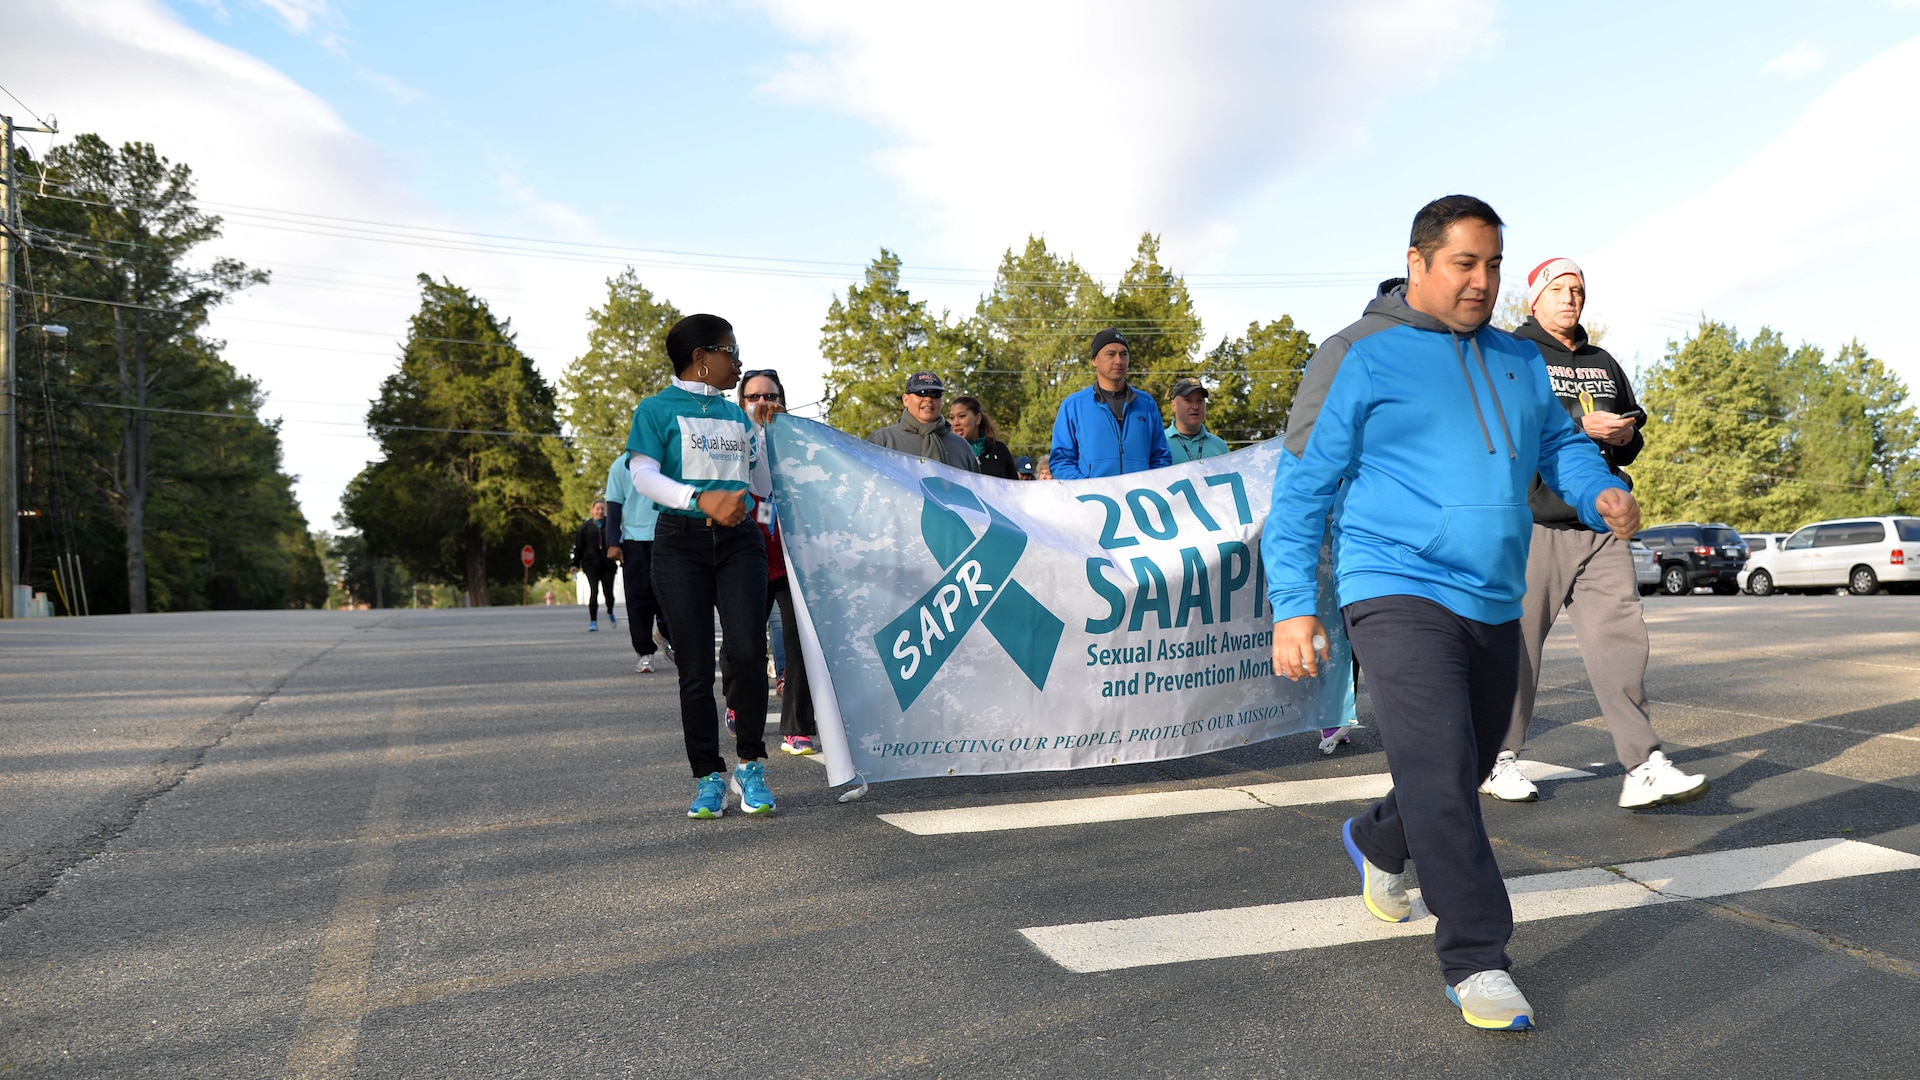 """Despite low temperatures and high winds, Defense Contract Management Agency Fort Lee, Virginia, personnel marked Sexual Assault Awareness and Prevention Month with its annual 5k April 7. Equal Employment Opportunity partnered with the agency's Work Life team to highlight the month's 2017 theme: """"Protecting Our People Protects Our Mission."""" (DCMA photo by Thomas Perry)"""